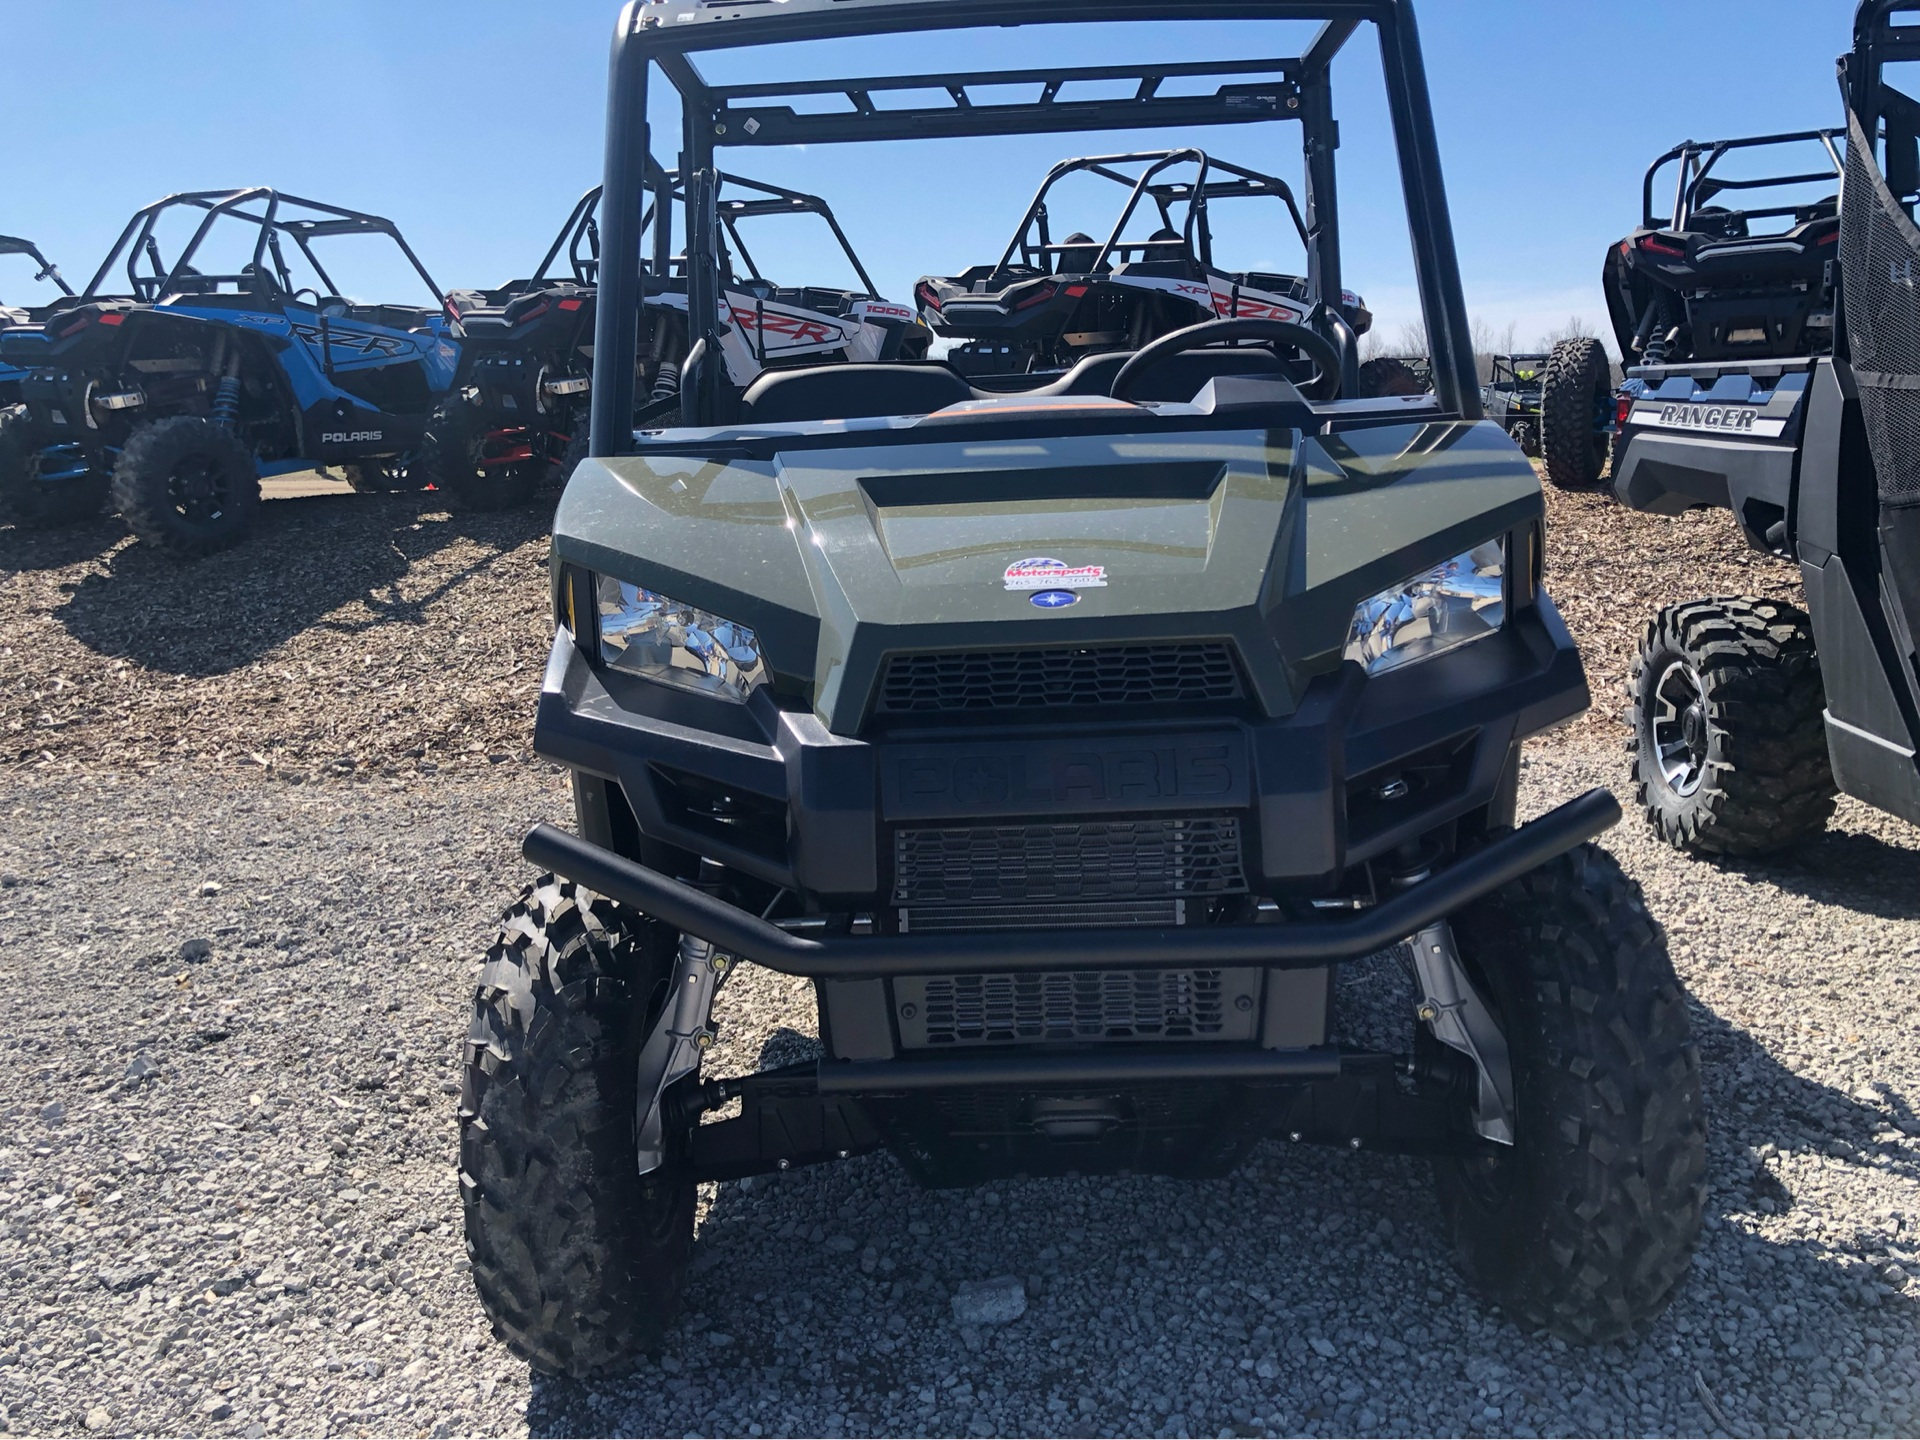 2020 Polaris Ranger 500 in Attica, Indiana - Photo 2